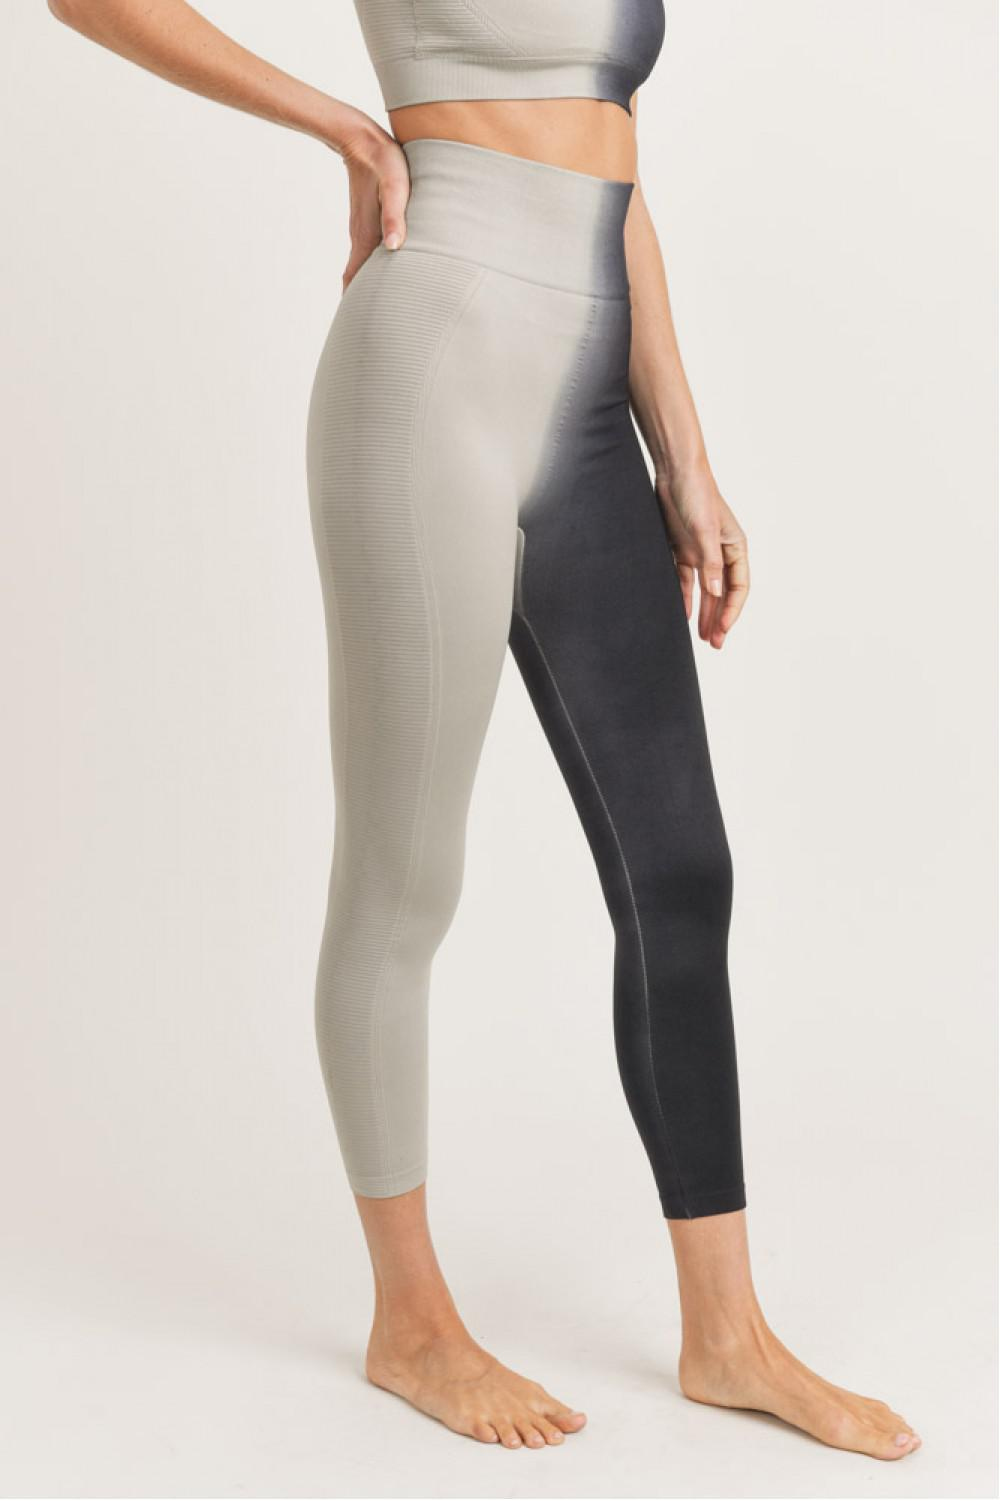 Ombre Seamless Leggings - 13 Hub Lane   |